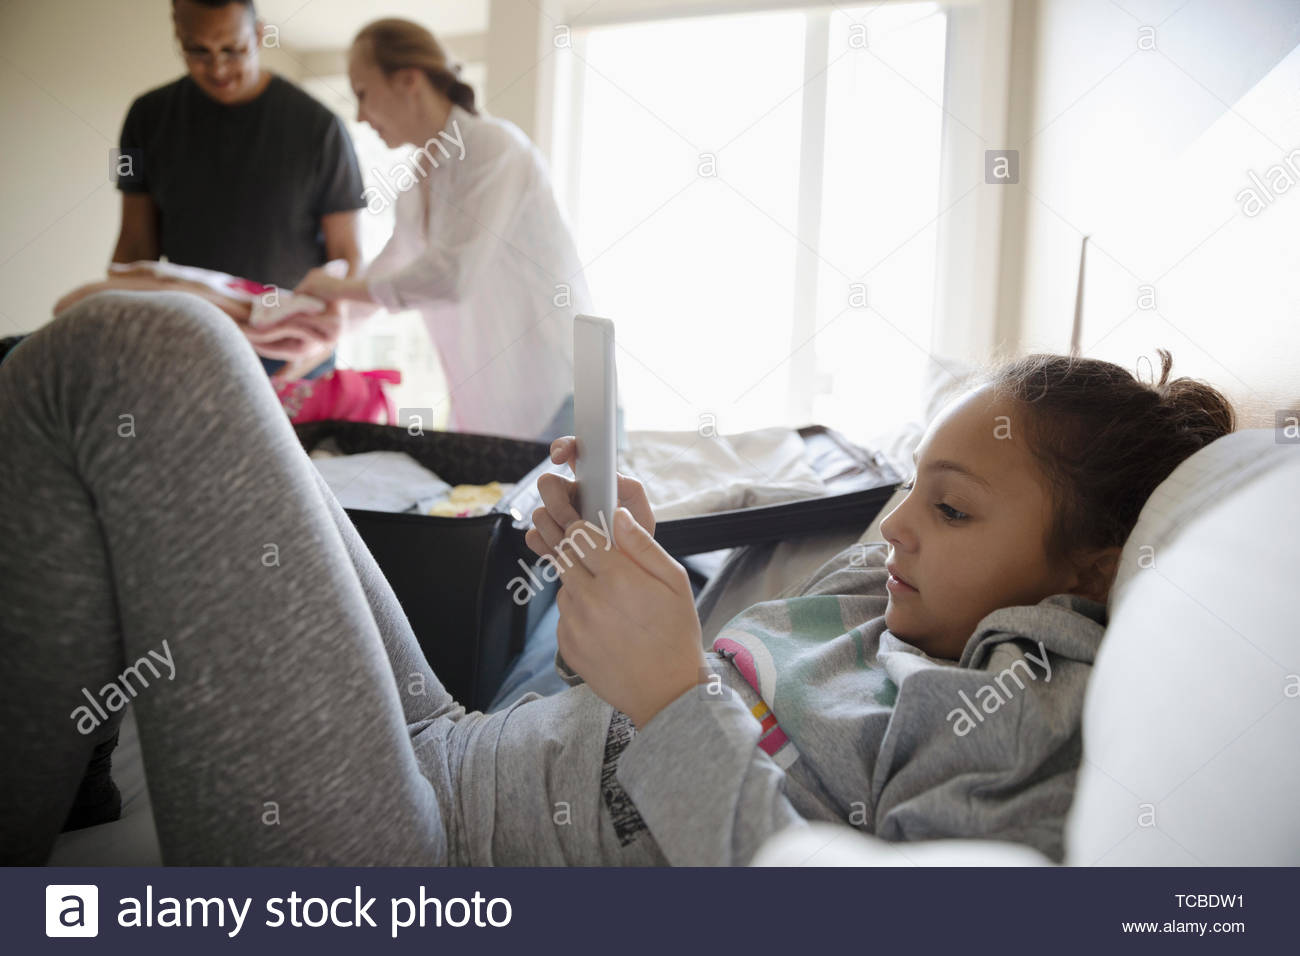 Girl using digital tablet on bed while parents pack suitcases for vacation - Stock Image